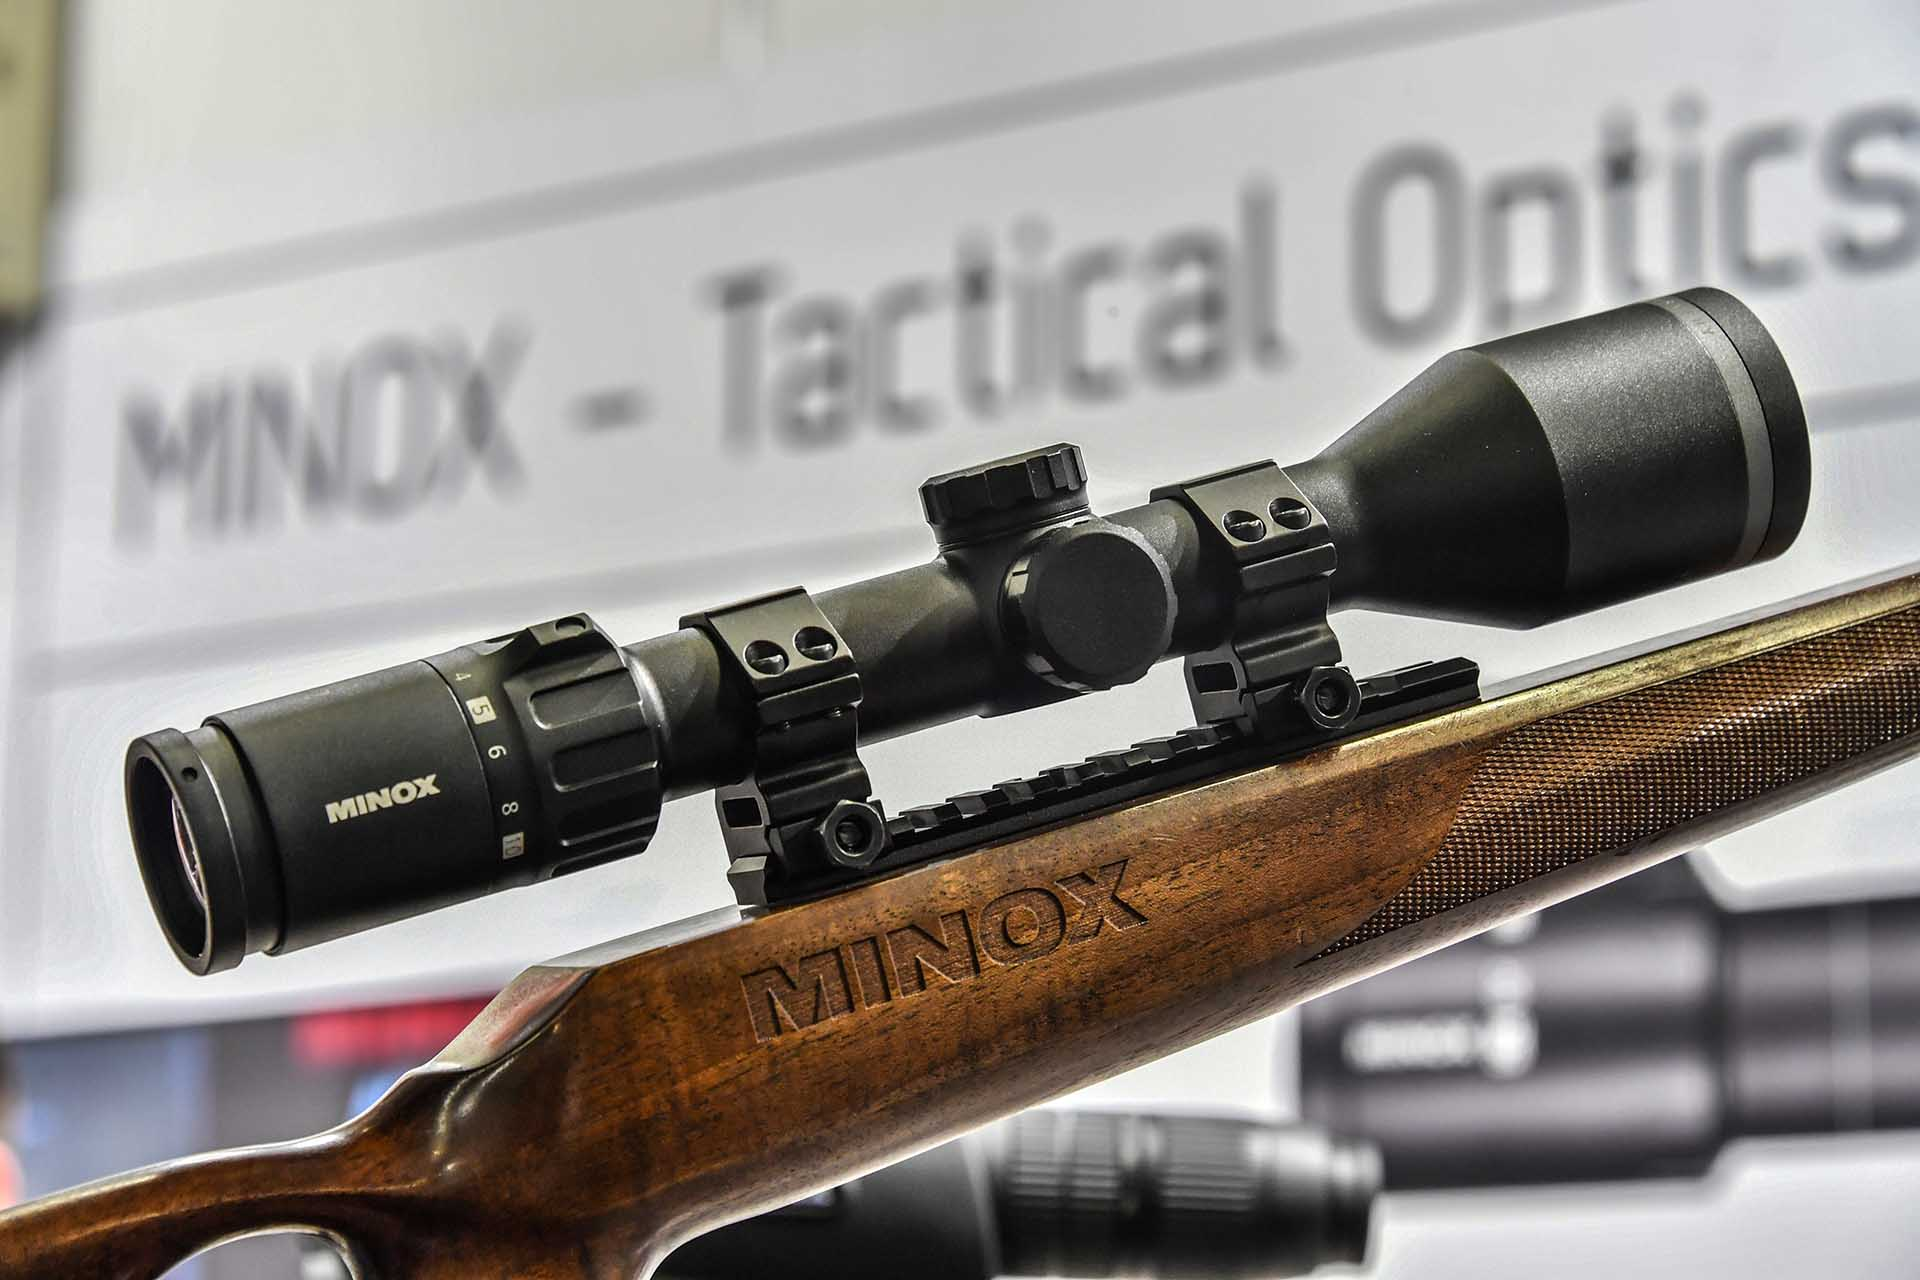 New riflescope line Z5.2 from MINOX introduced at IWA 2018